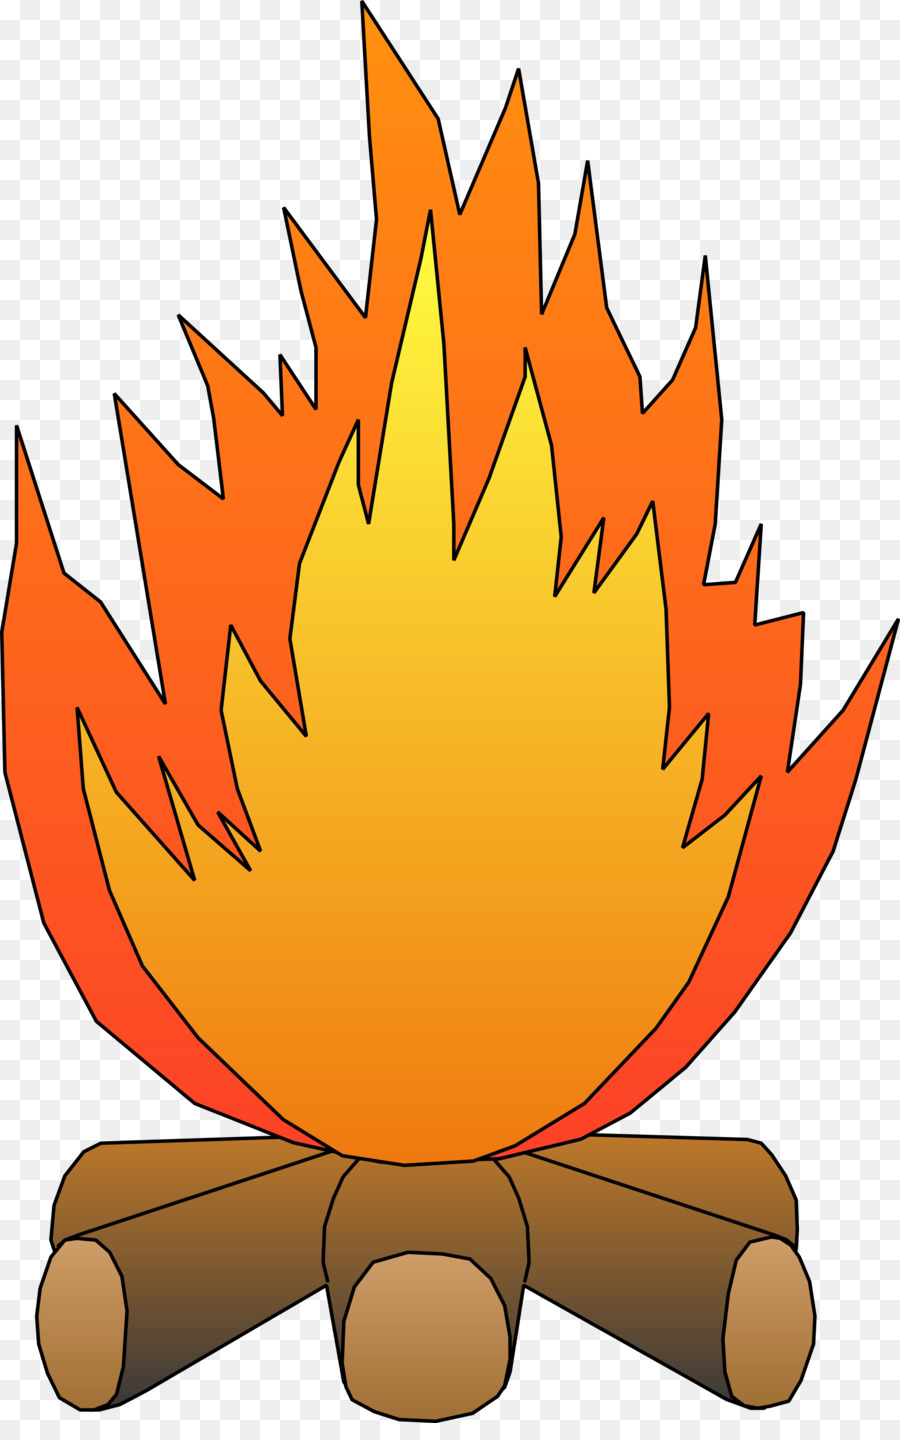 Fire Cartoon clipart - Fire, Leaf, Orange, transparent clip art